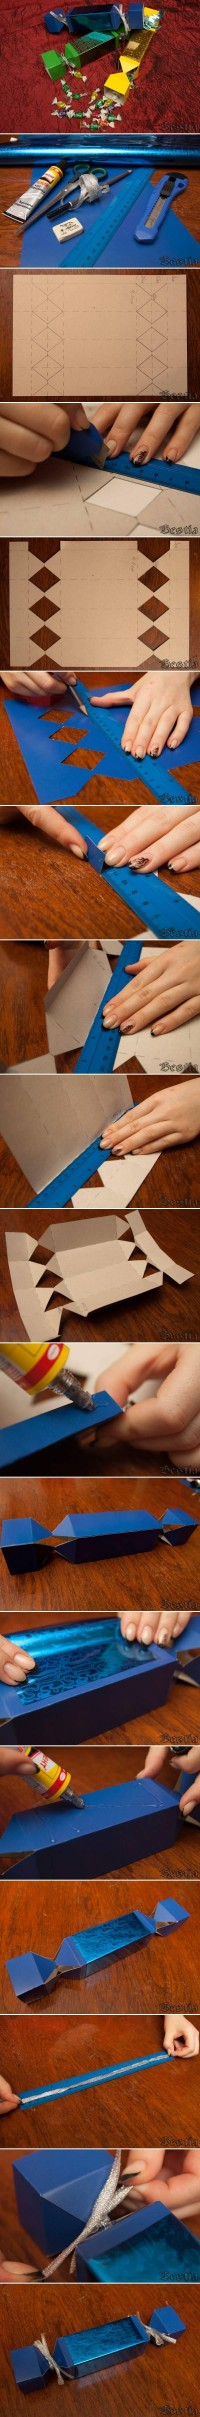 DIY Lovely Candy Style Box DIY Projects | UsefulDIY.com